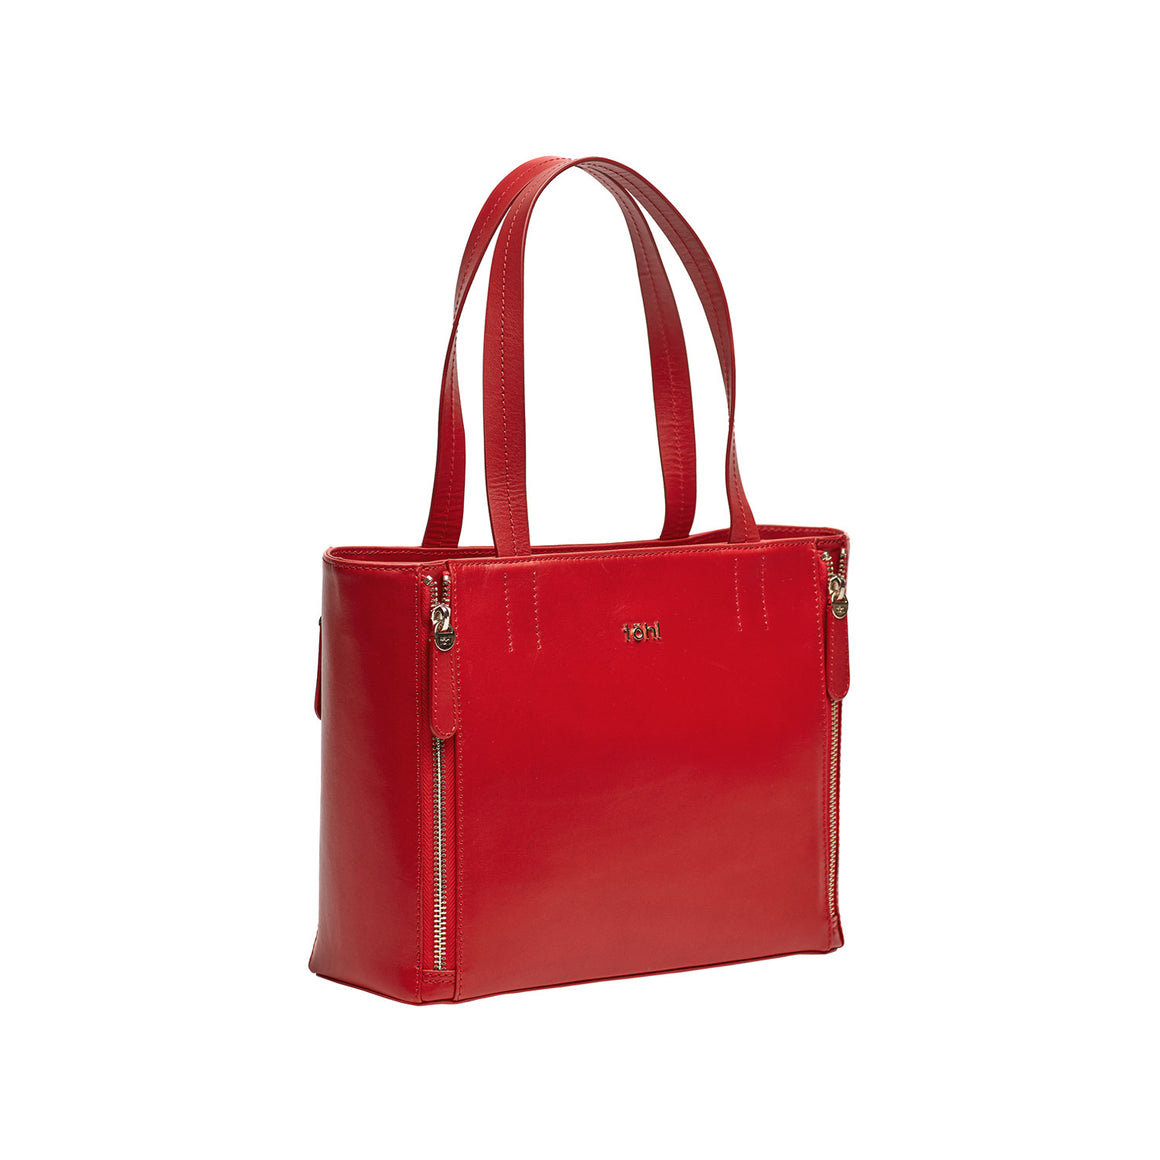 HH 0004 - TOHL VARICK WOMEN'S TOTE BAG - SPICE RED